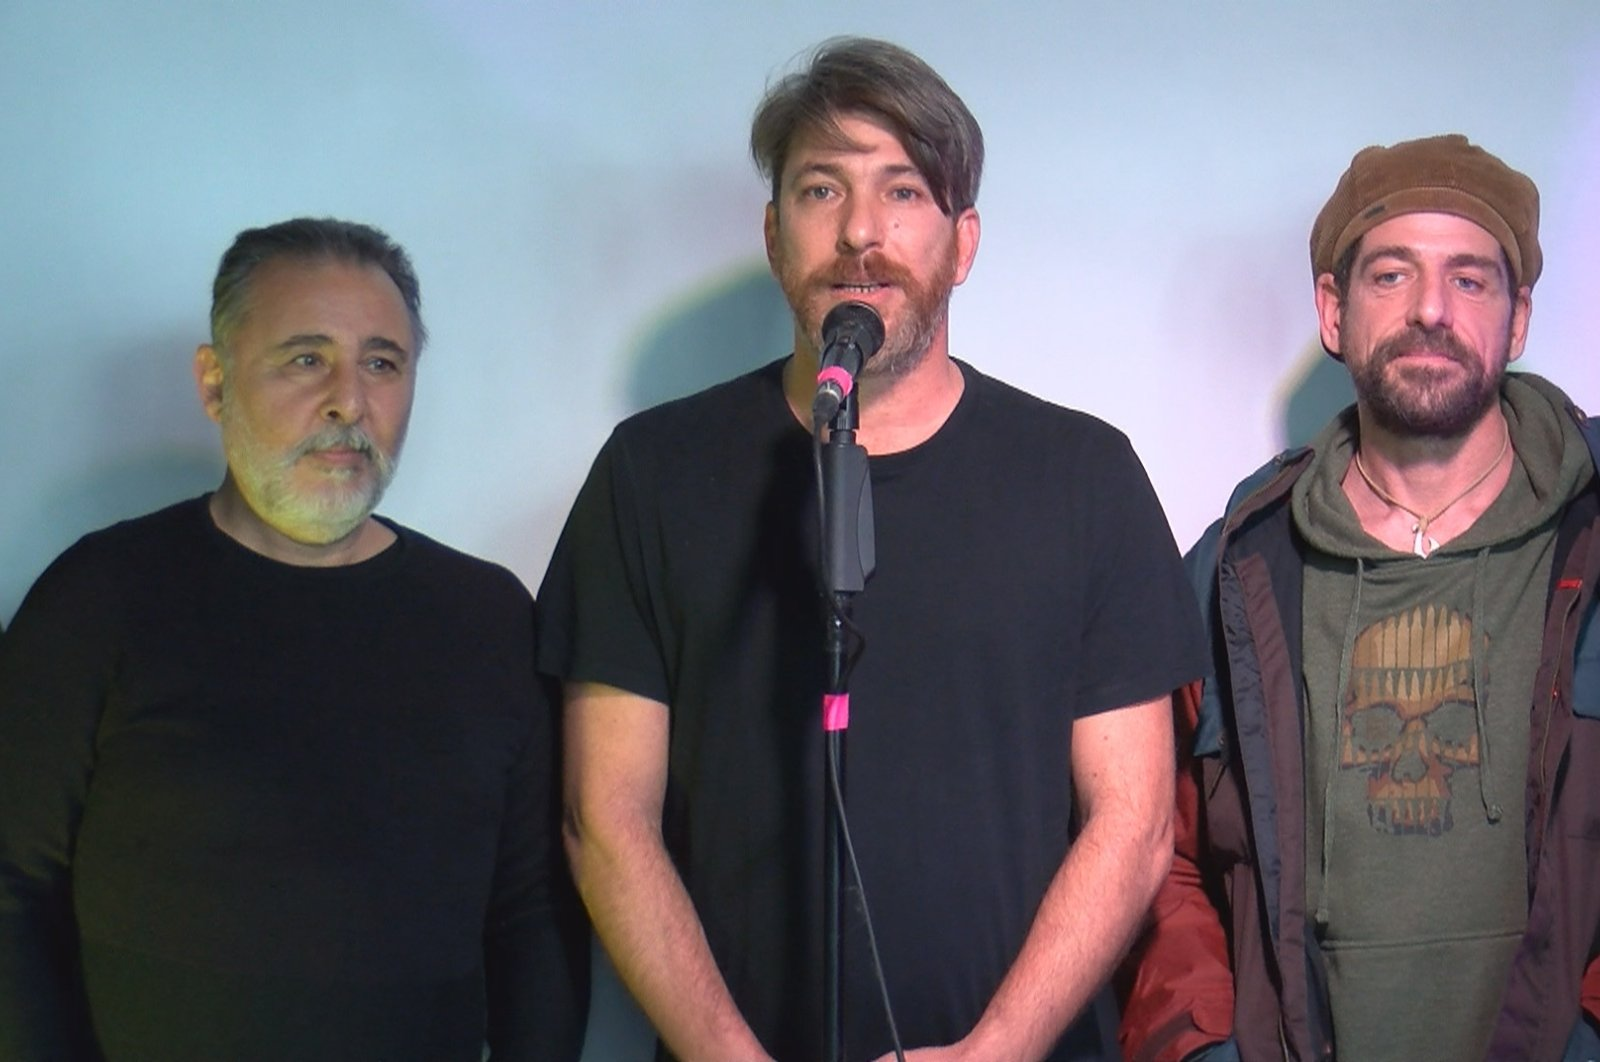 From left to right, stage actors Kemal Başar, Onur Şenay and Cemal Hünal attend the inauguration of the tiyatro.net platform, Dec. 28, 2020. (DHA PHOTO)